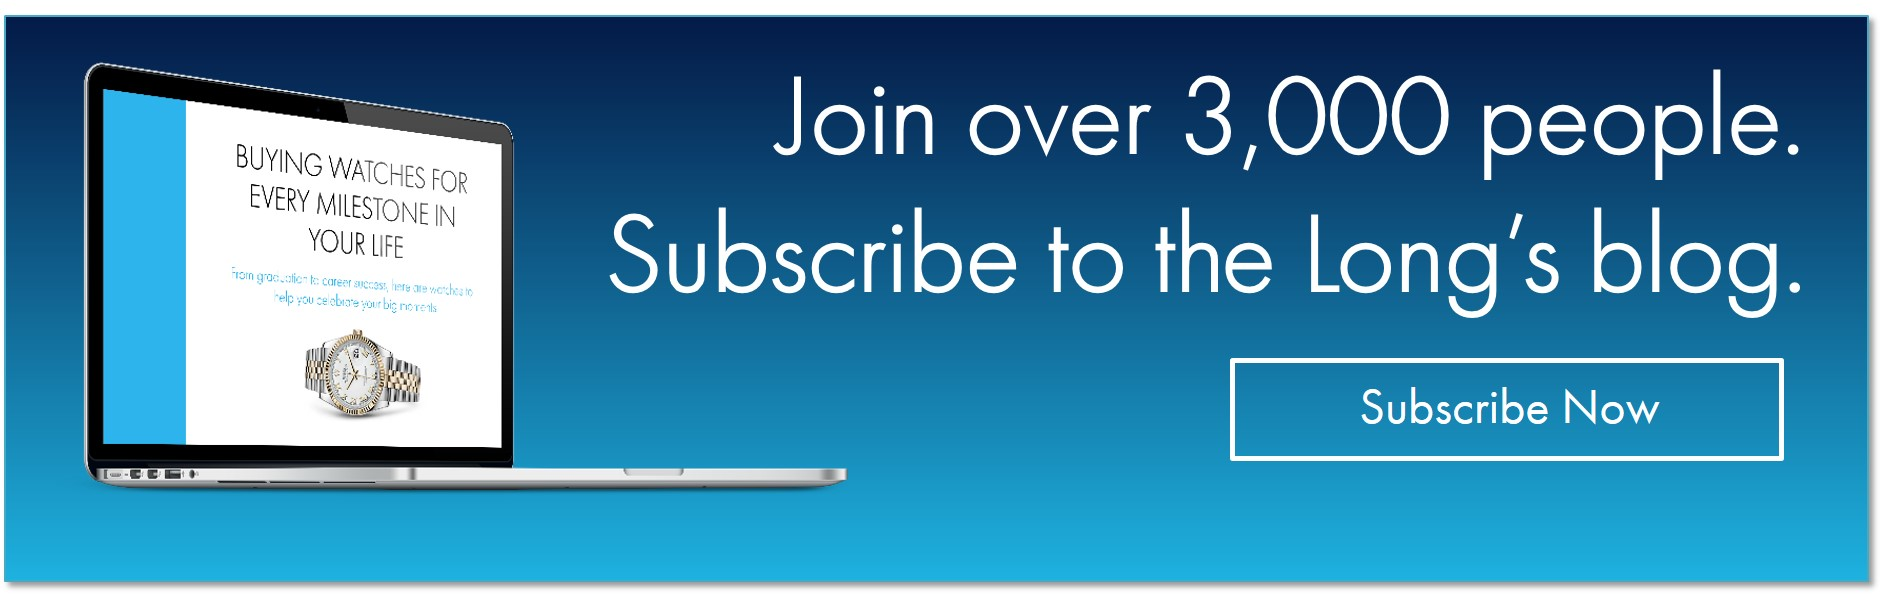 Subscribe To The Long's Blog